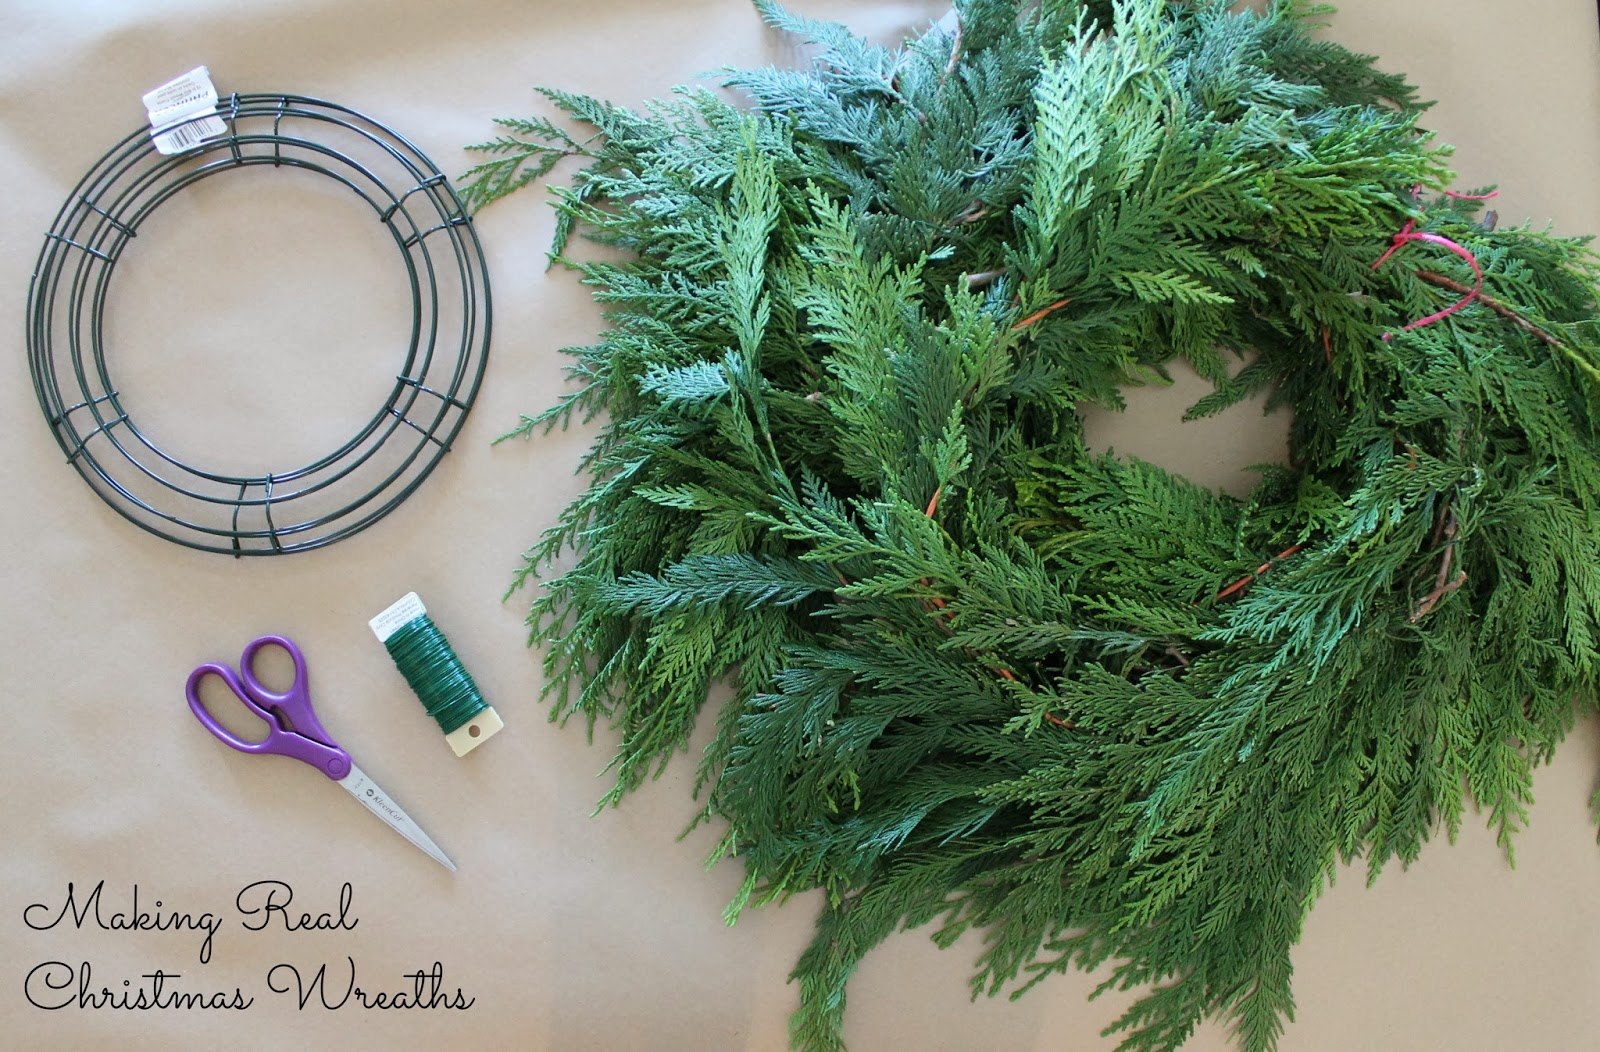 The beauty and aroma of a fresh garland gracefully draped over a fence, banister, or deck railing are true hallmarks of the season. Here's how you can make your own garland to enjoy all through.